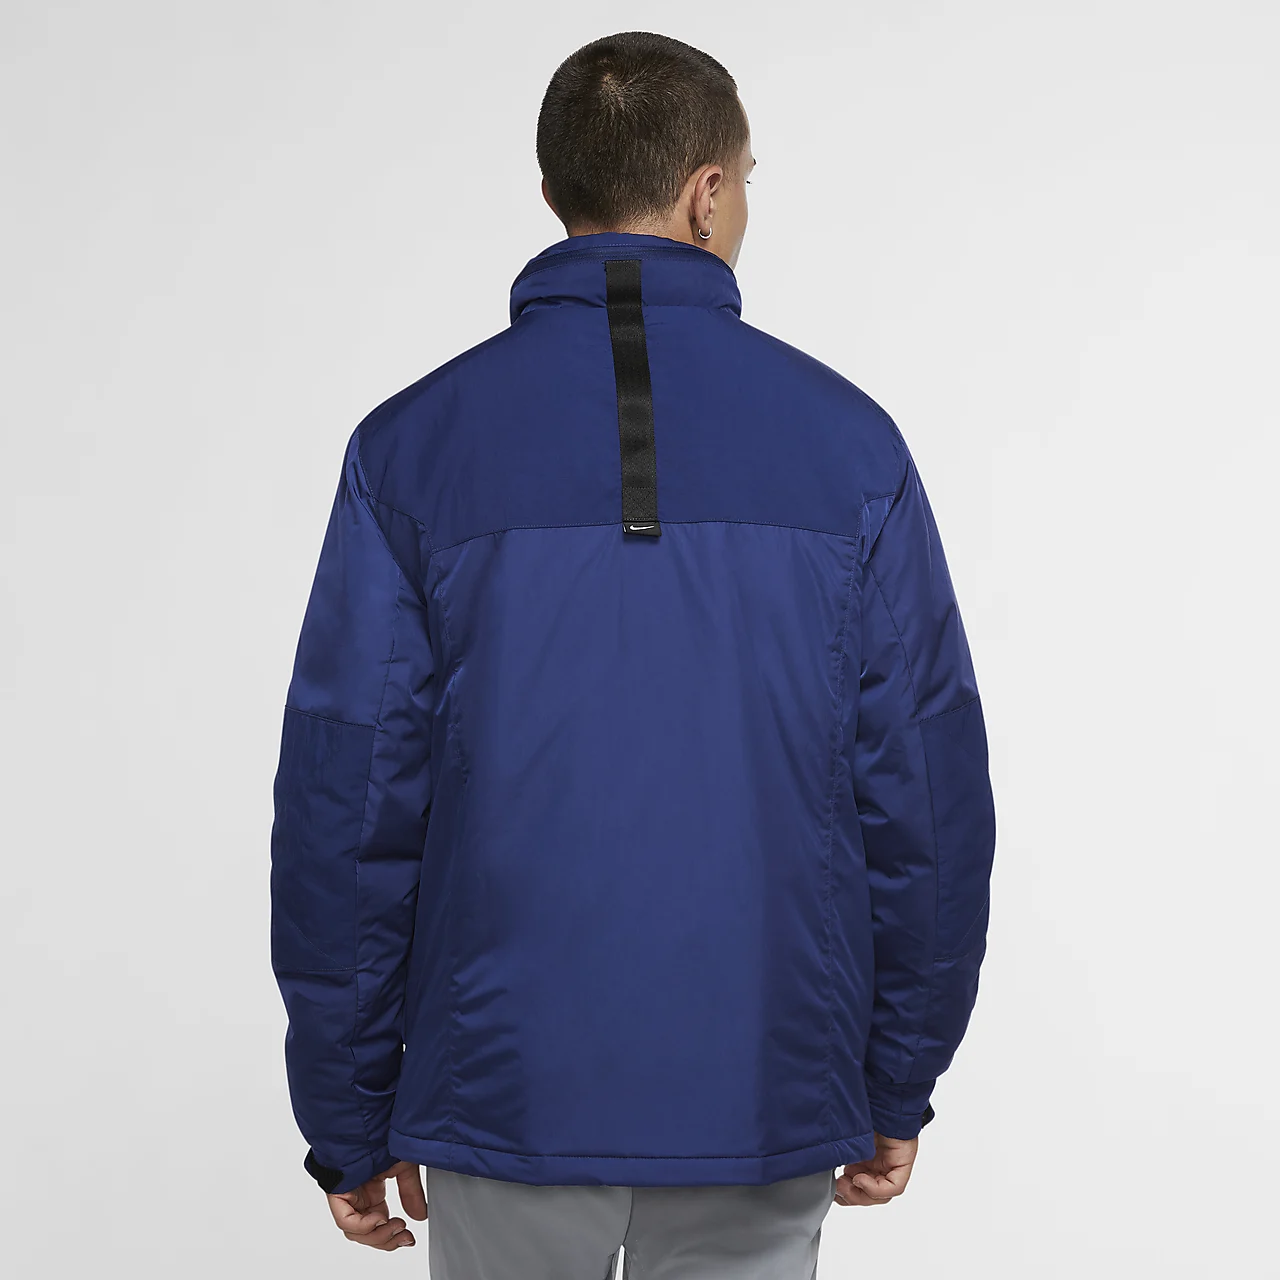 Nike Sportswear Synthetic-Fill Men's Repel M65 Jacket CV5562-492